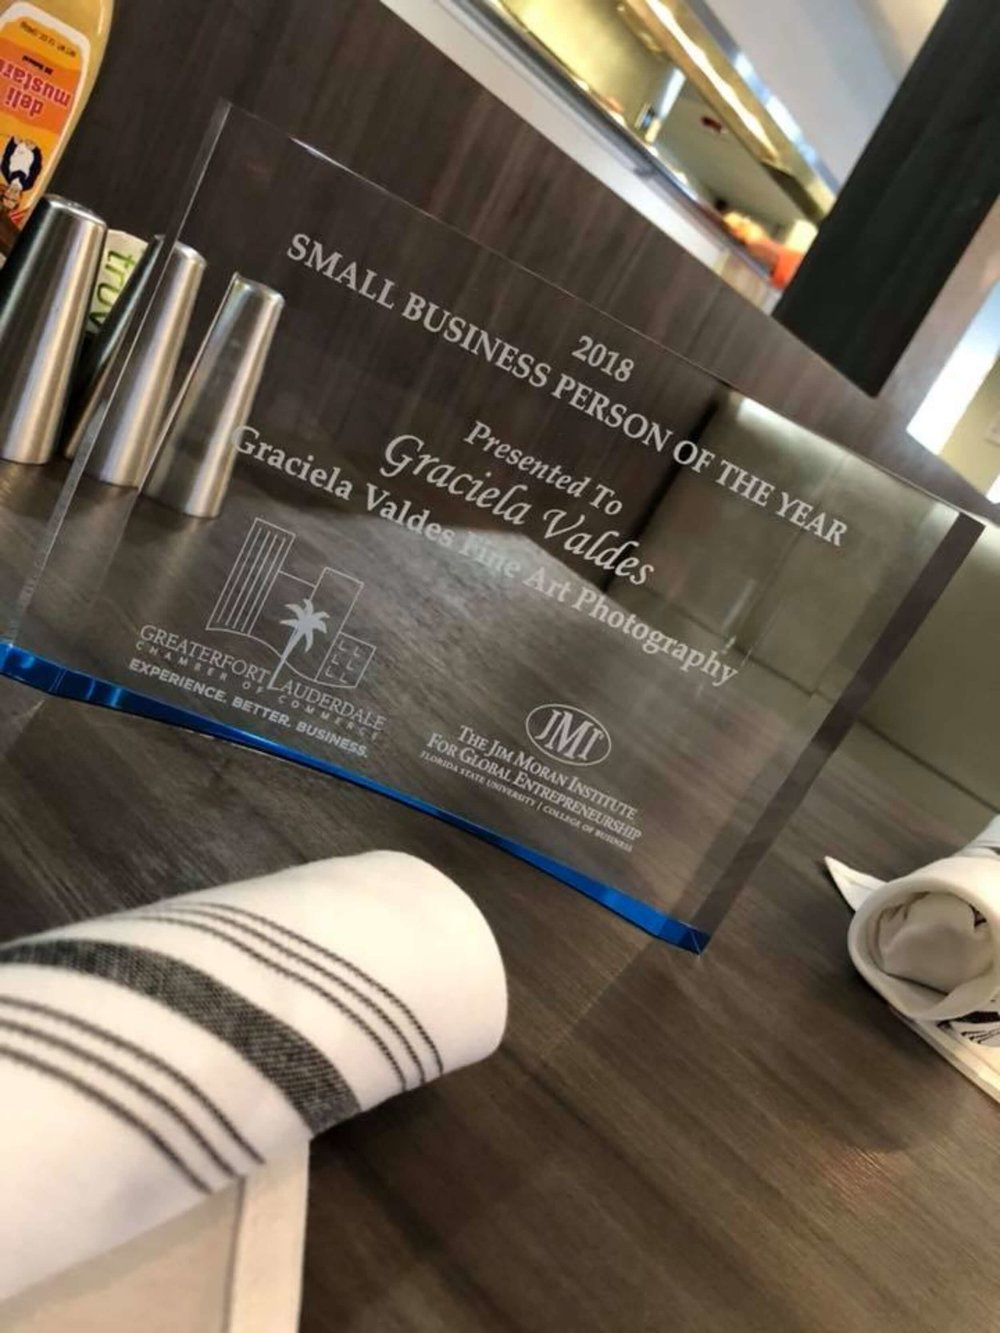 Graciela Valdes Greater Fort Lauderdale Chamber Small Business Person of the Year (5).jpg